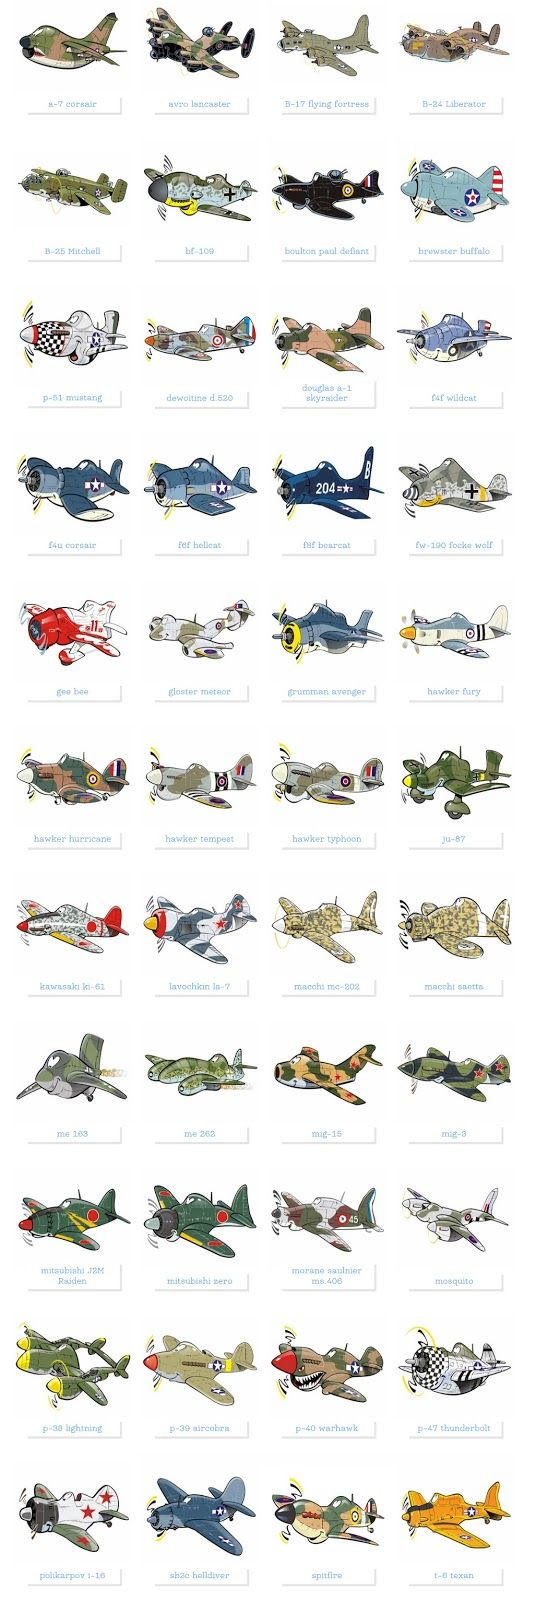 Famous military planes illustrated as cartoon style caricatures